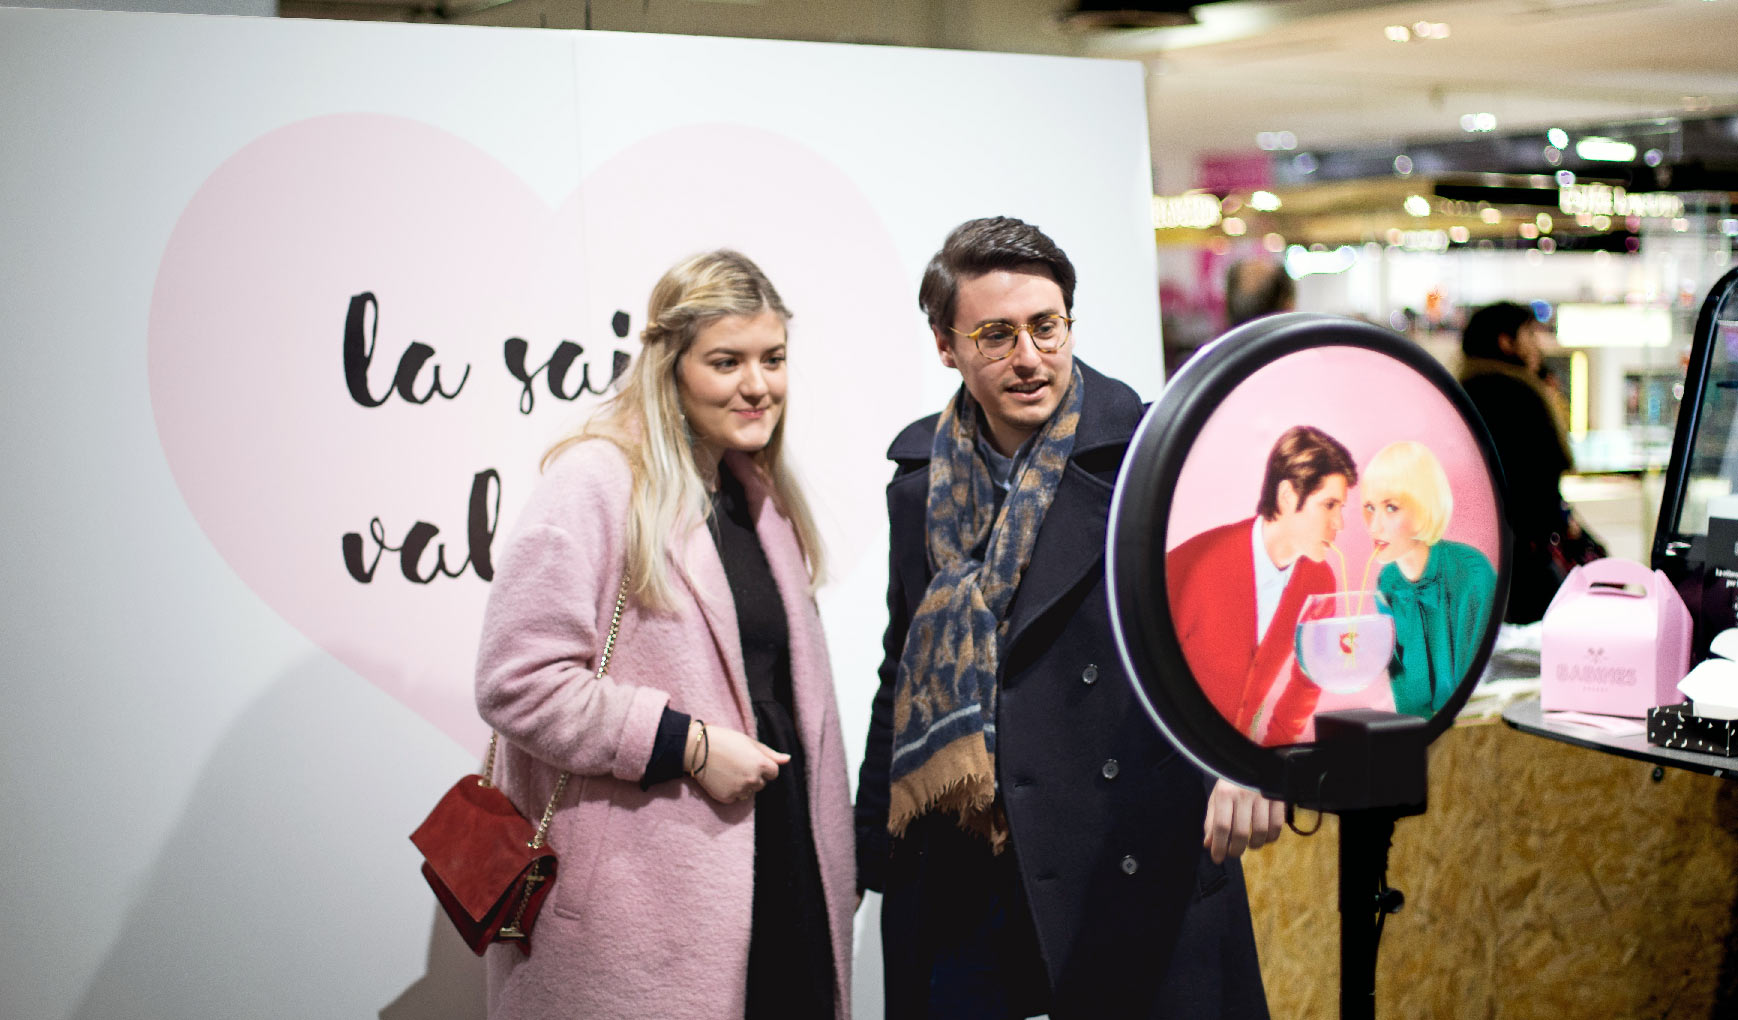 Un couple se prend en photo avec la borne photo photobooth Josepho dans le magasin Galeries Lafayette de Paris.